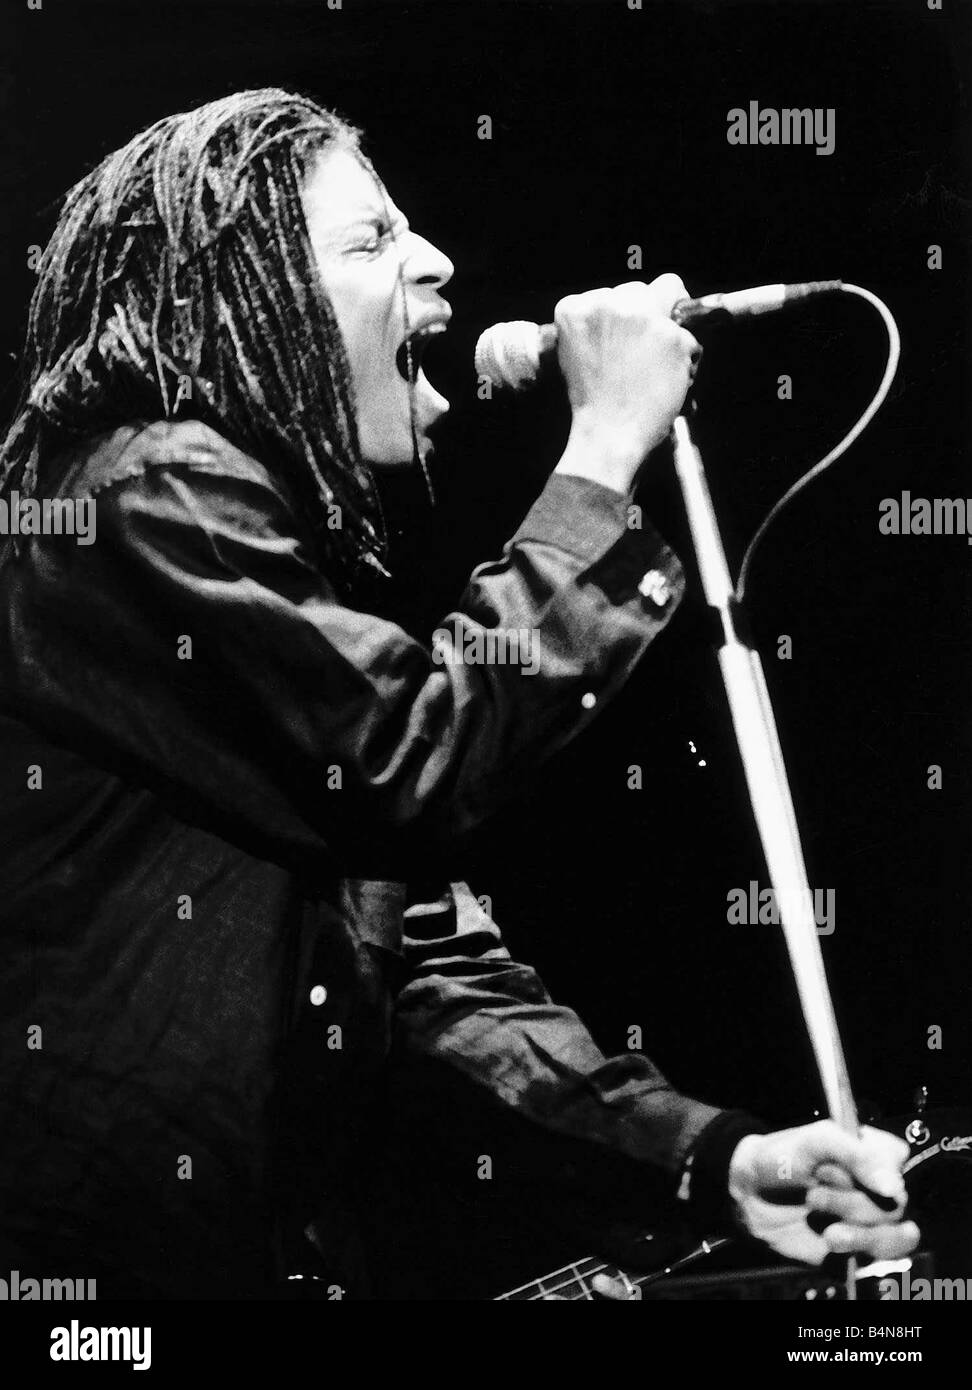 Terence Trent Darby pop singer - Stock Image